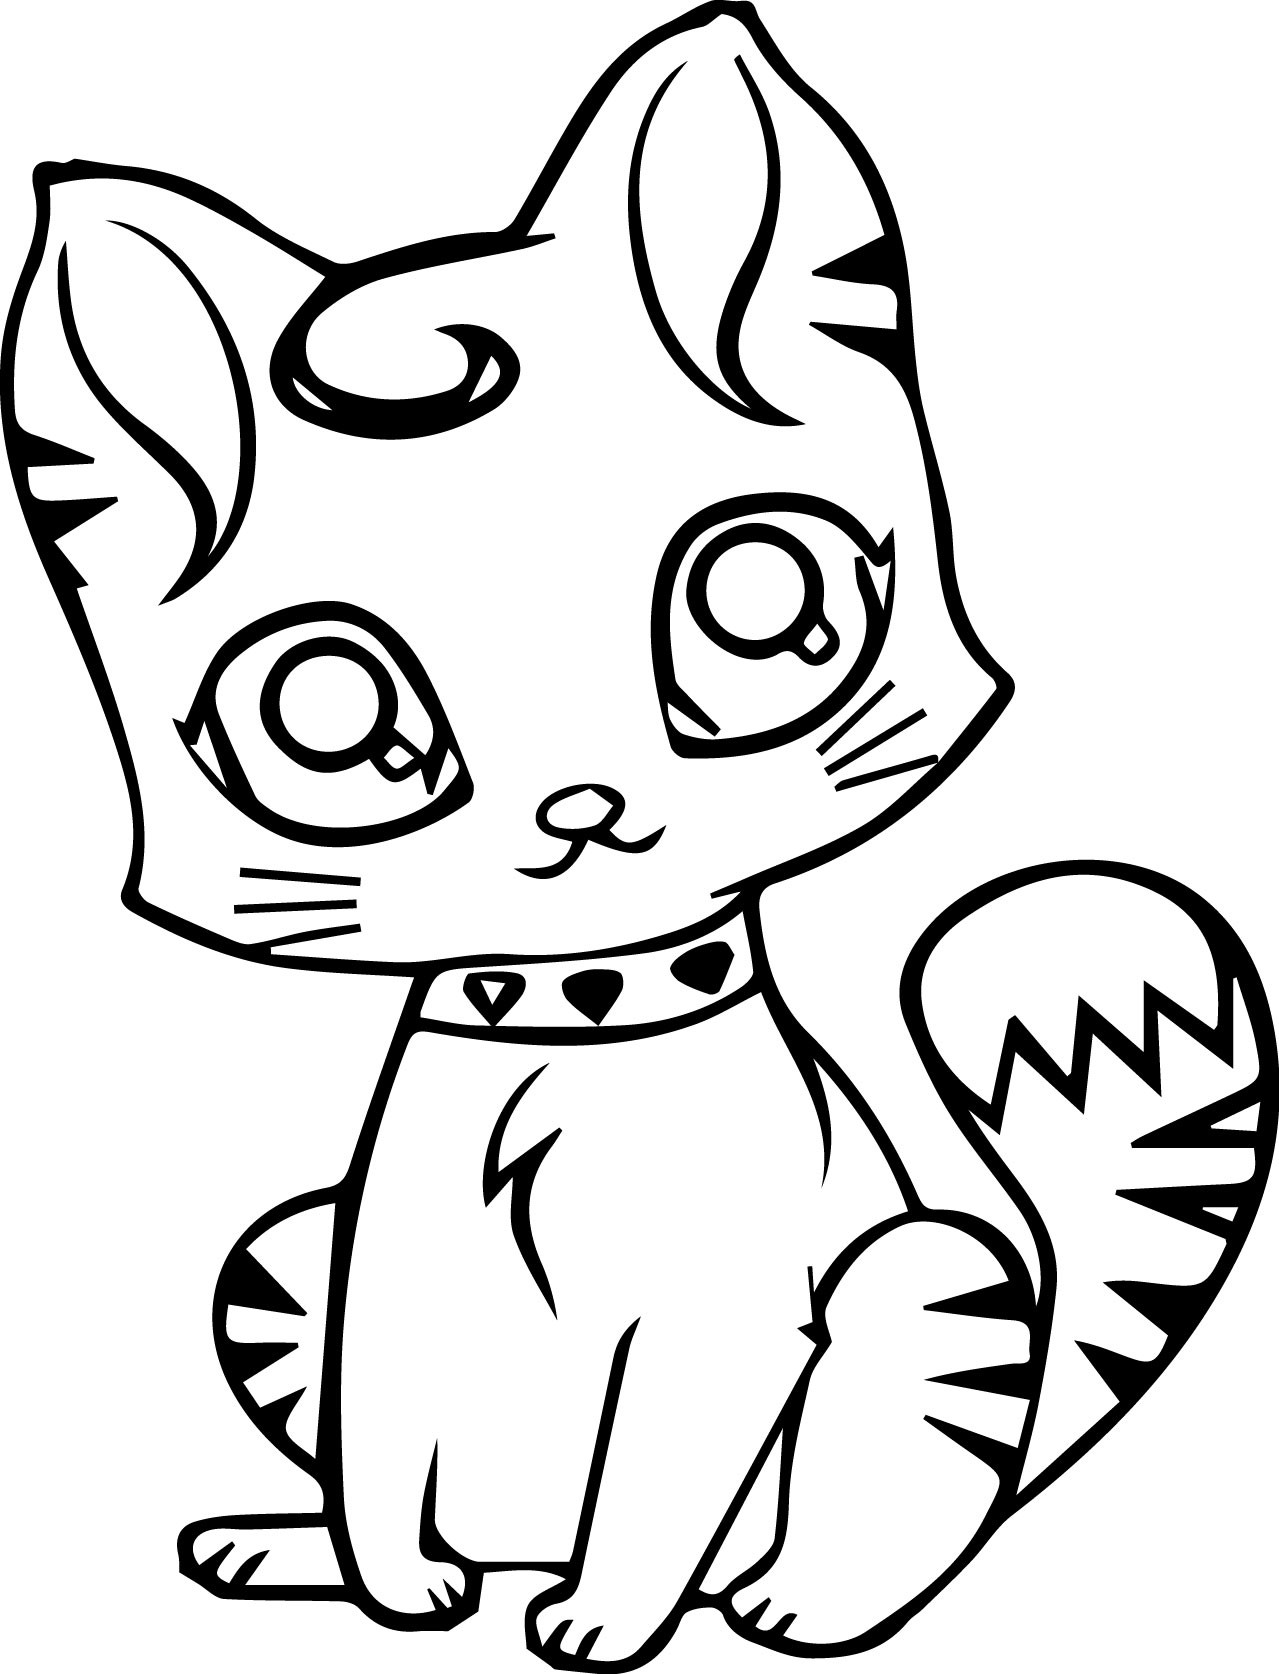 1279x1674 Cat Coloring Pages Online Free New Cat Coloring Pages Online Free